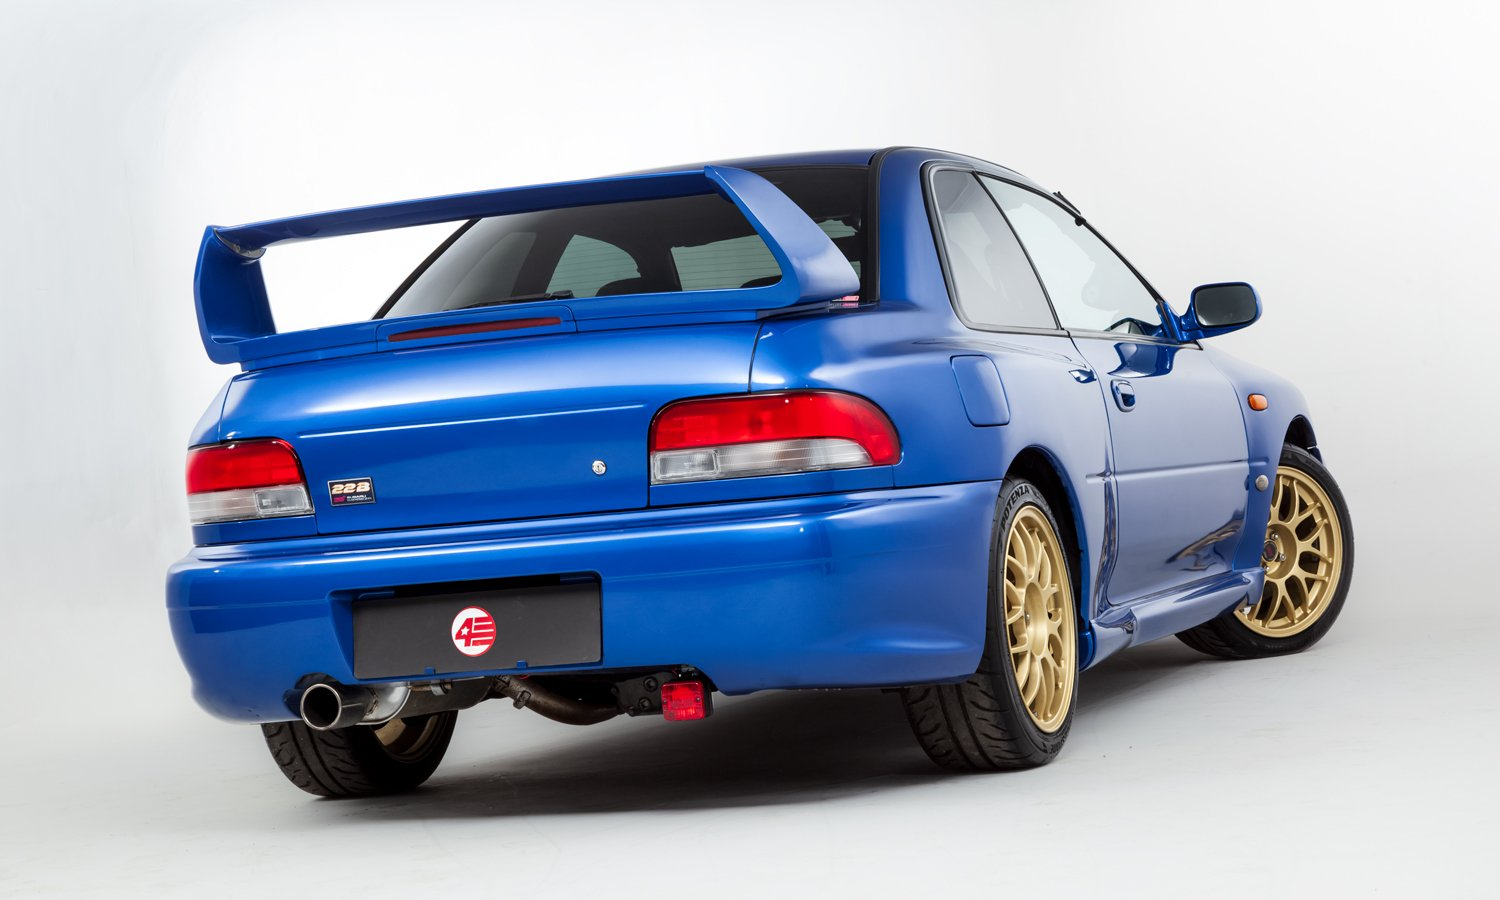 Subaru-Impreza-22B-STi-1998-for-sale-7